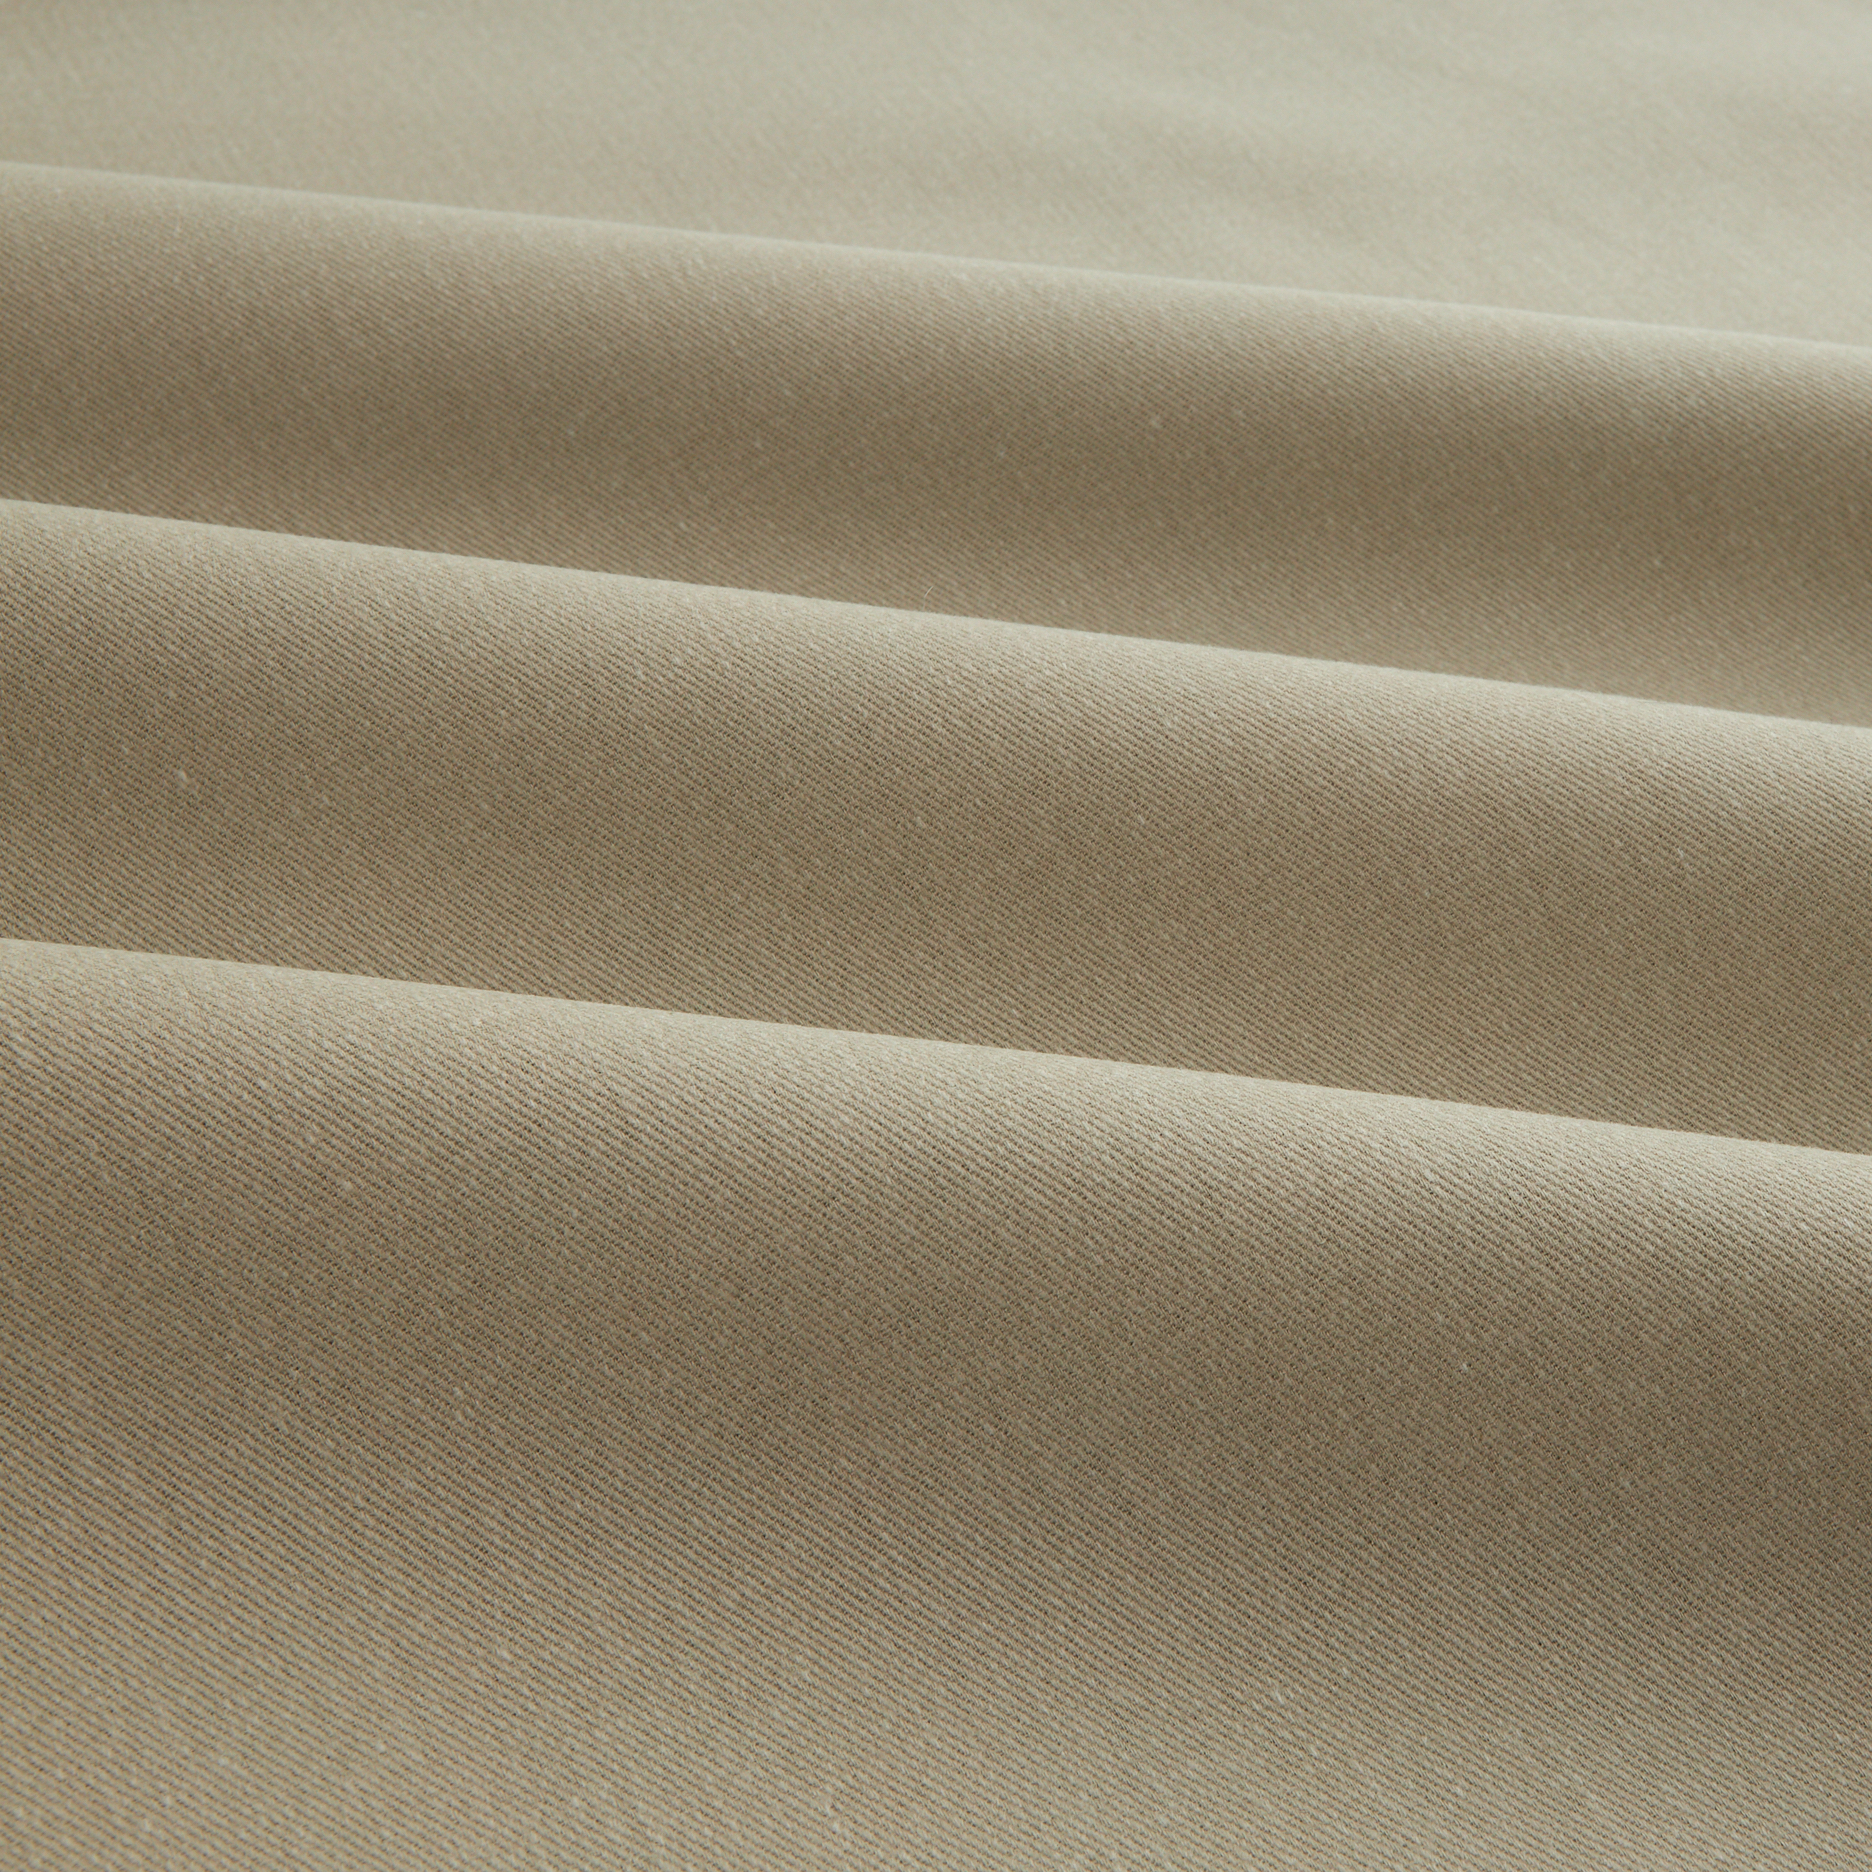 Sanded/Brushed Twill Cream Fabric by Carr in USA